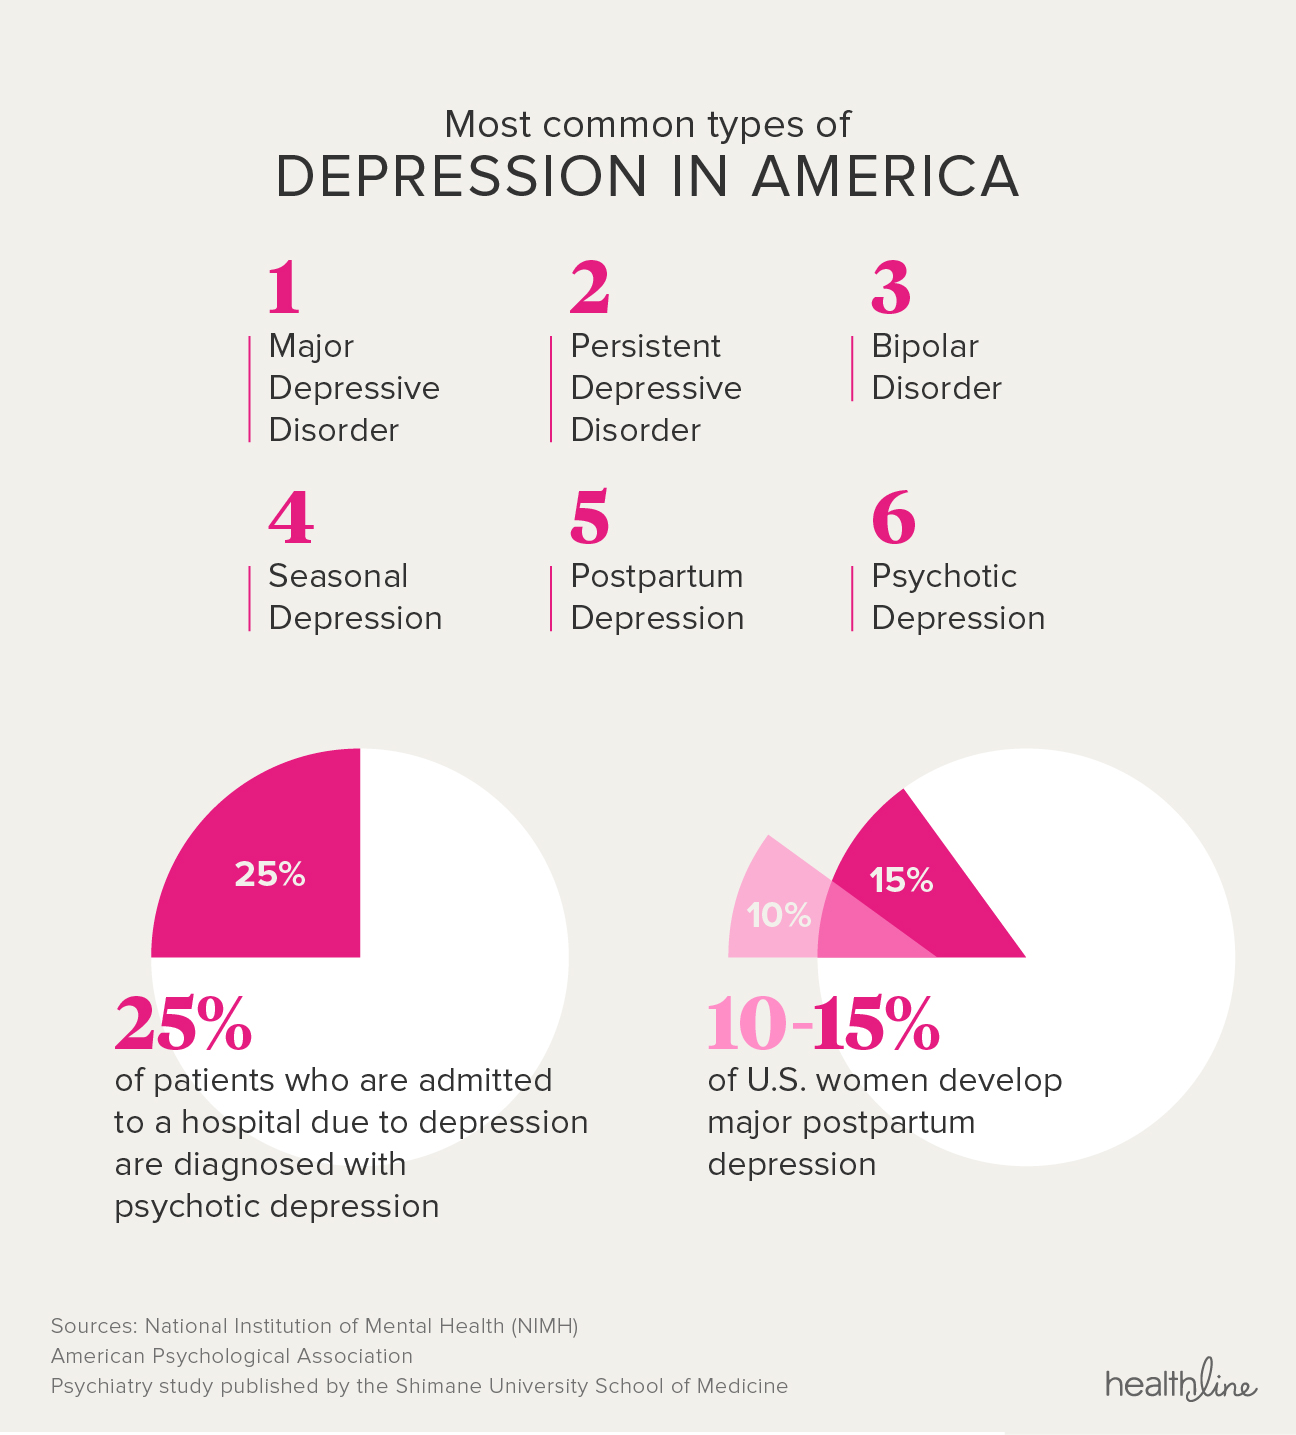 A chart showing the most common types of depression in America.